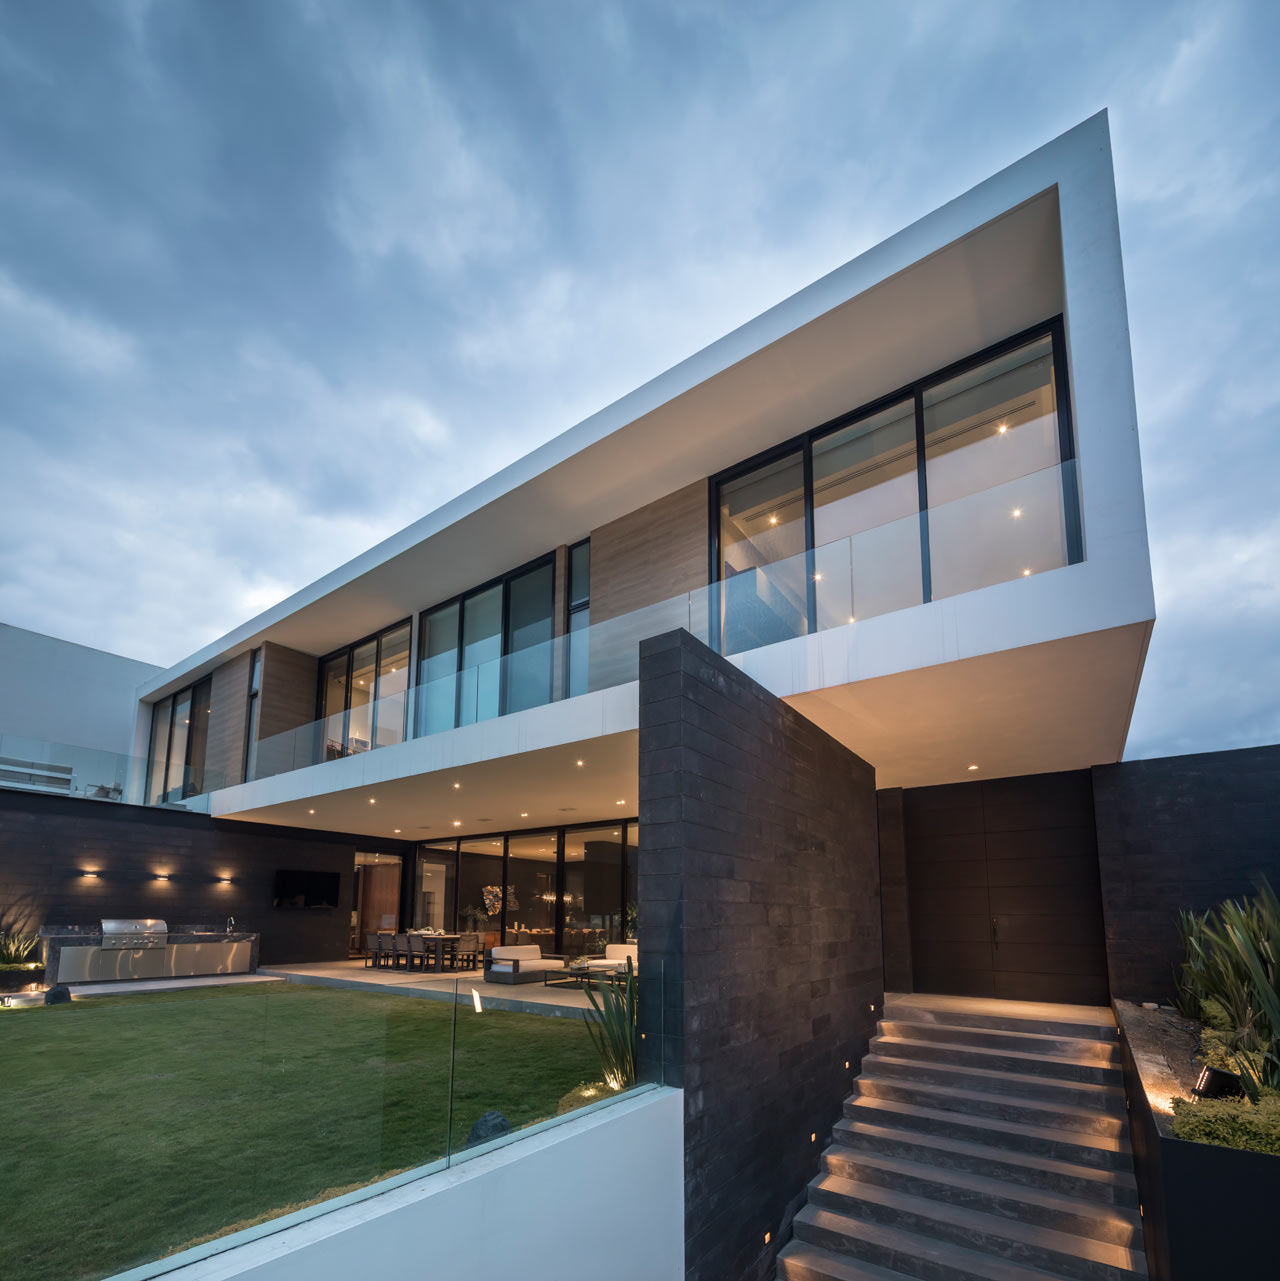 GLR Arquitectos Designs the Dreamy ER House in Monterrey, Mexico